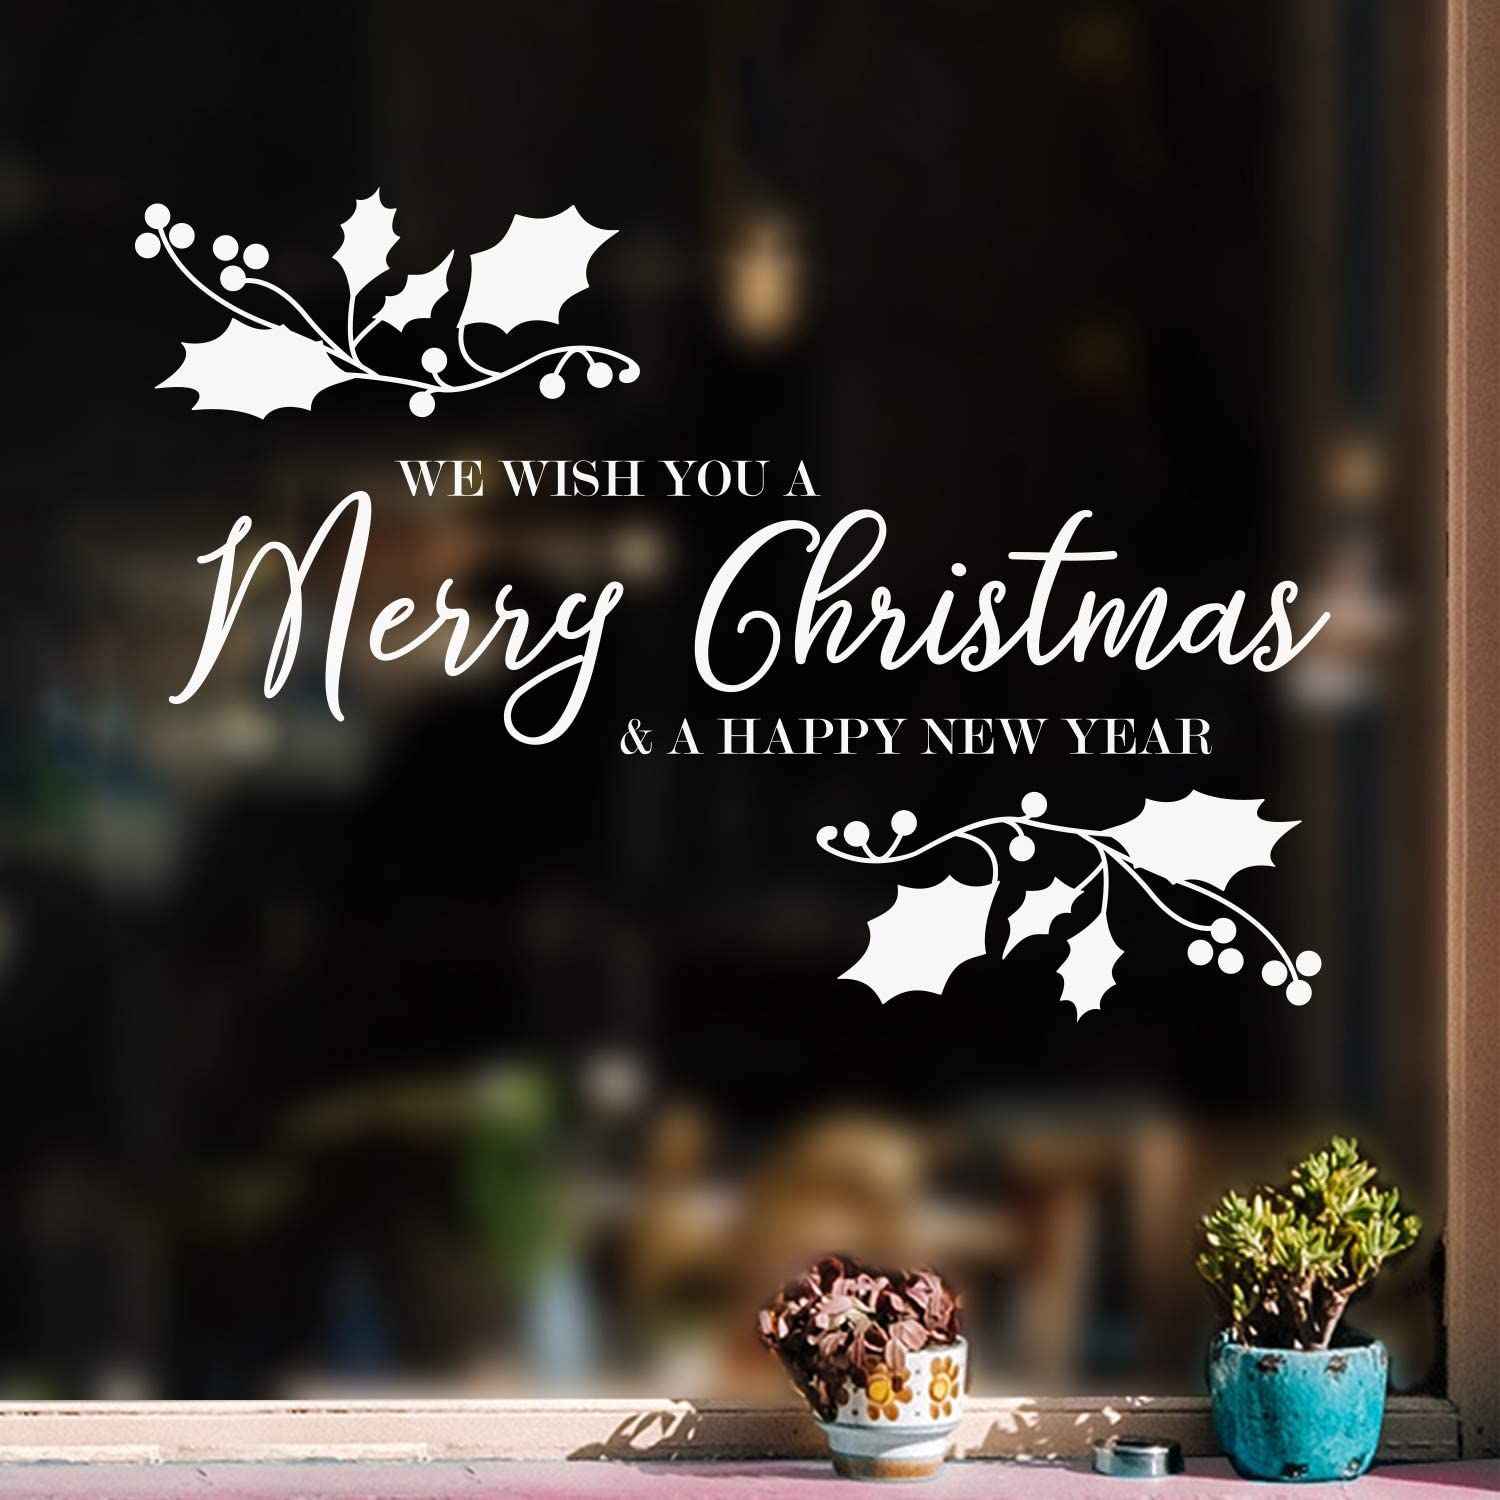 """Vinyl Wall Art Decal - We Wish You A Merry Christmas - 22.5"""" x 32"""" - Christmas Holiday Seasonal Sticker - Indoor Home Apartment Wall Door Window Bedroom Workplace Decor Decals (White)"""